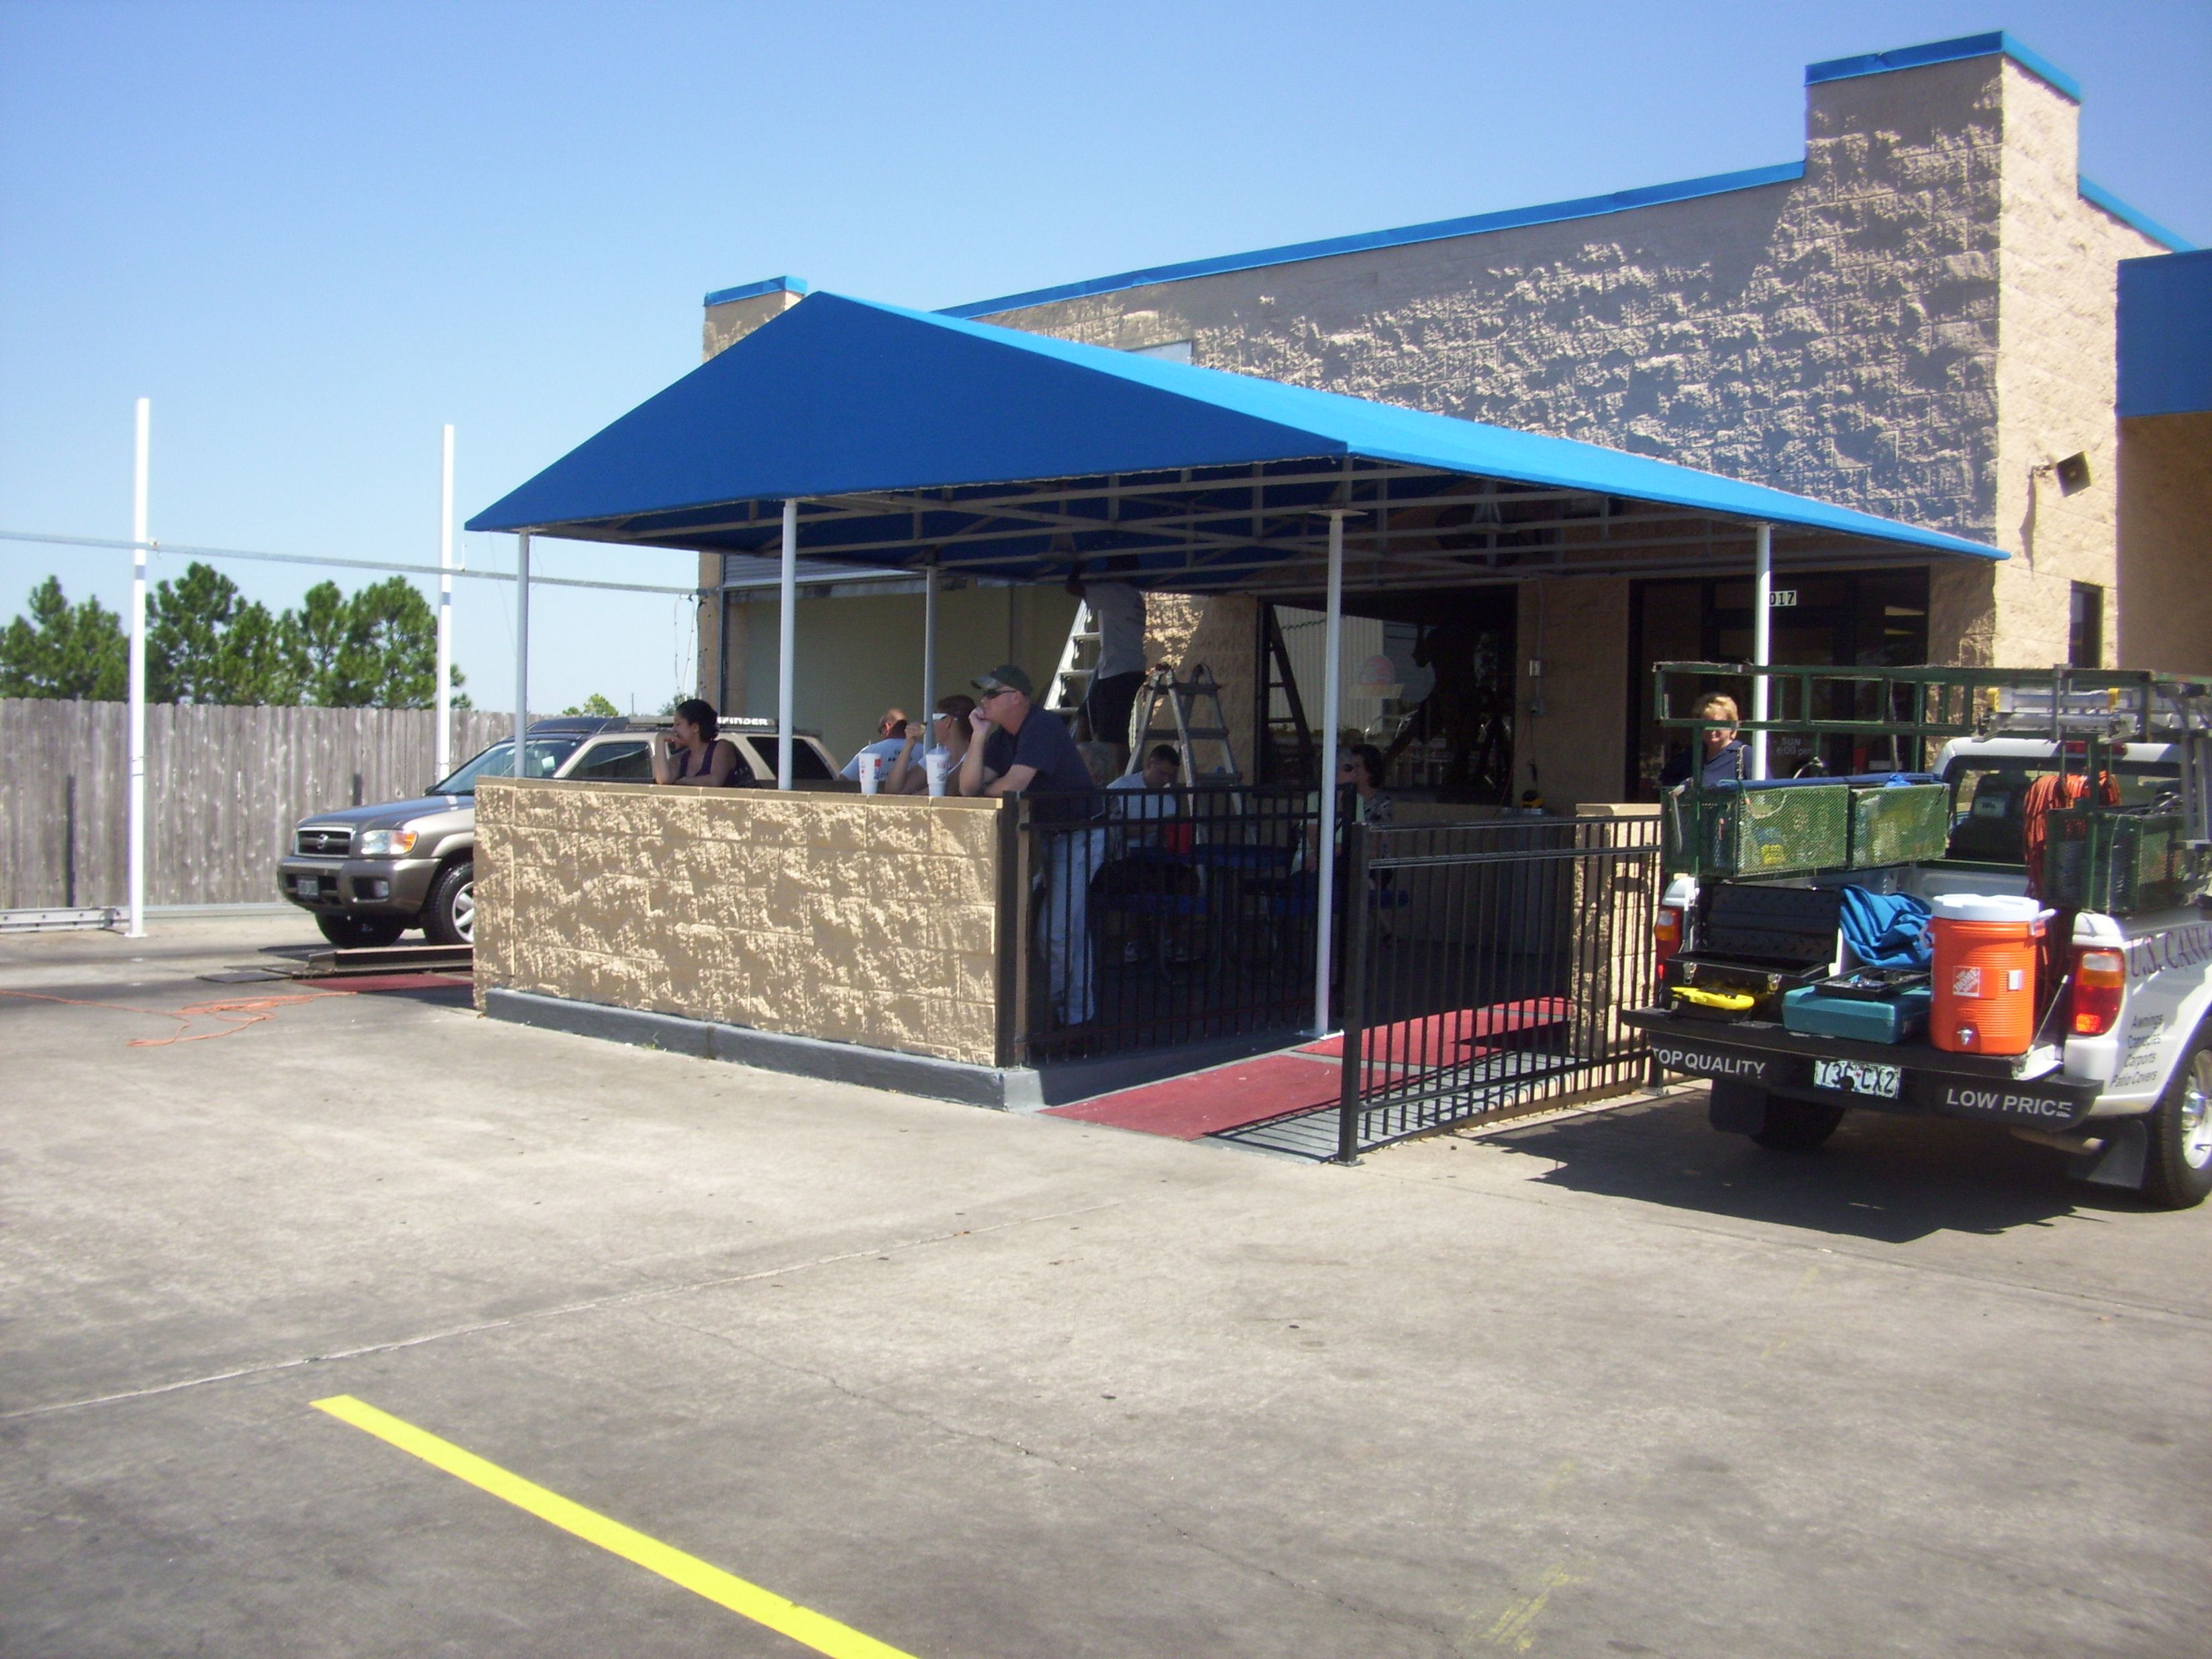 Yes We Fabricate Canopies For You To Stay In The Shade Awnings Canopies Shade Structure